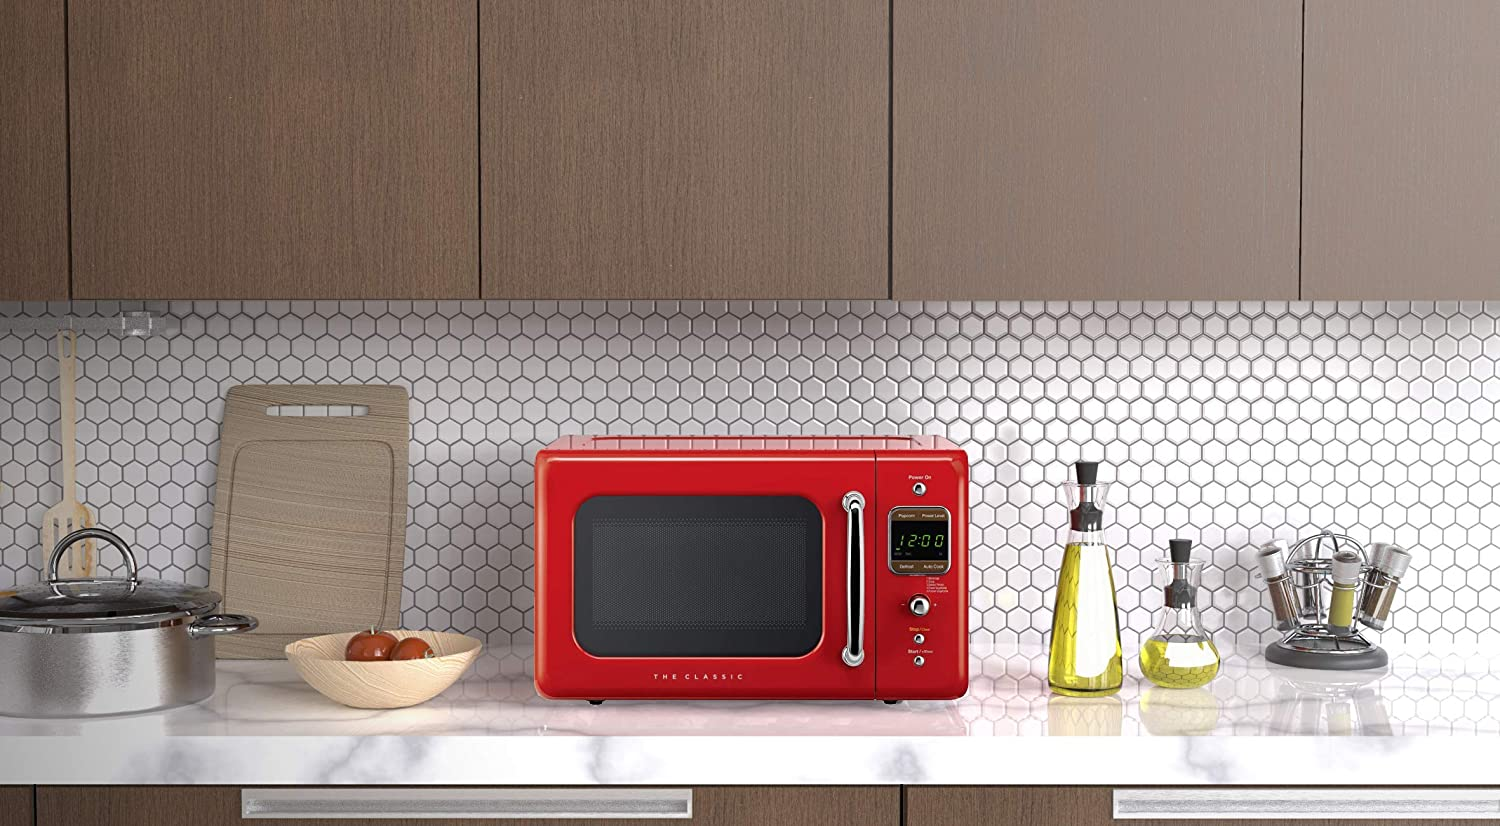 A red Microwave oven sitting a white countertop in a kitchen.